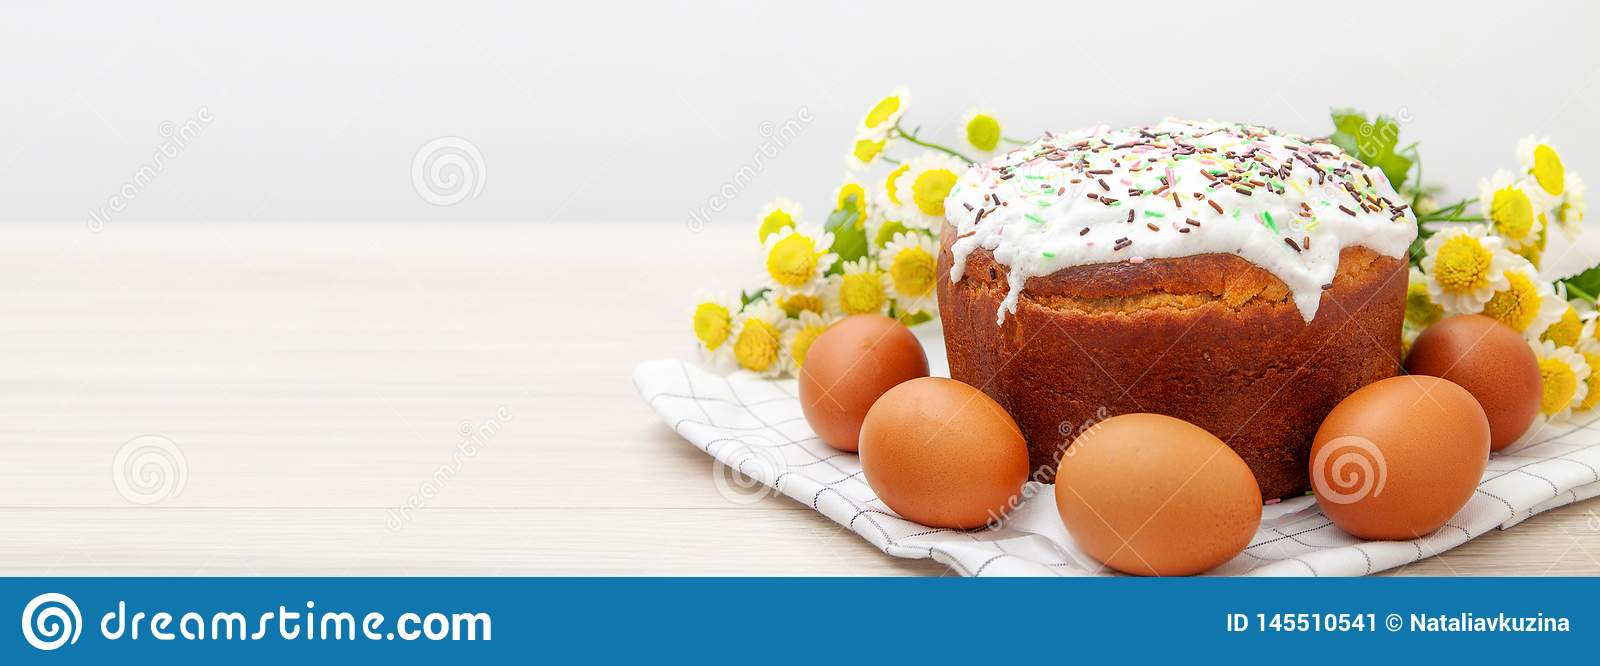 Wide banner with Easter cake and colored eggs yellow flower blossoms on background. Holiday food and easter concept. Copyspase for